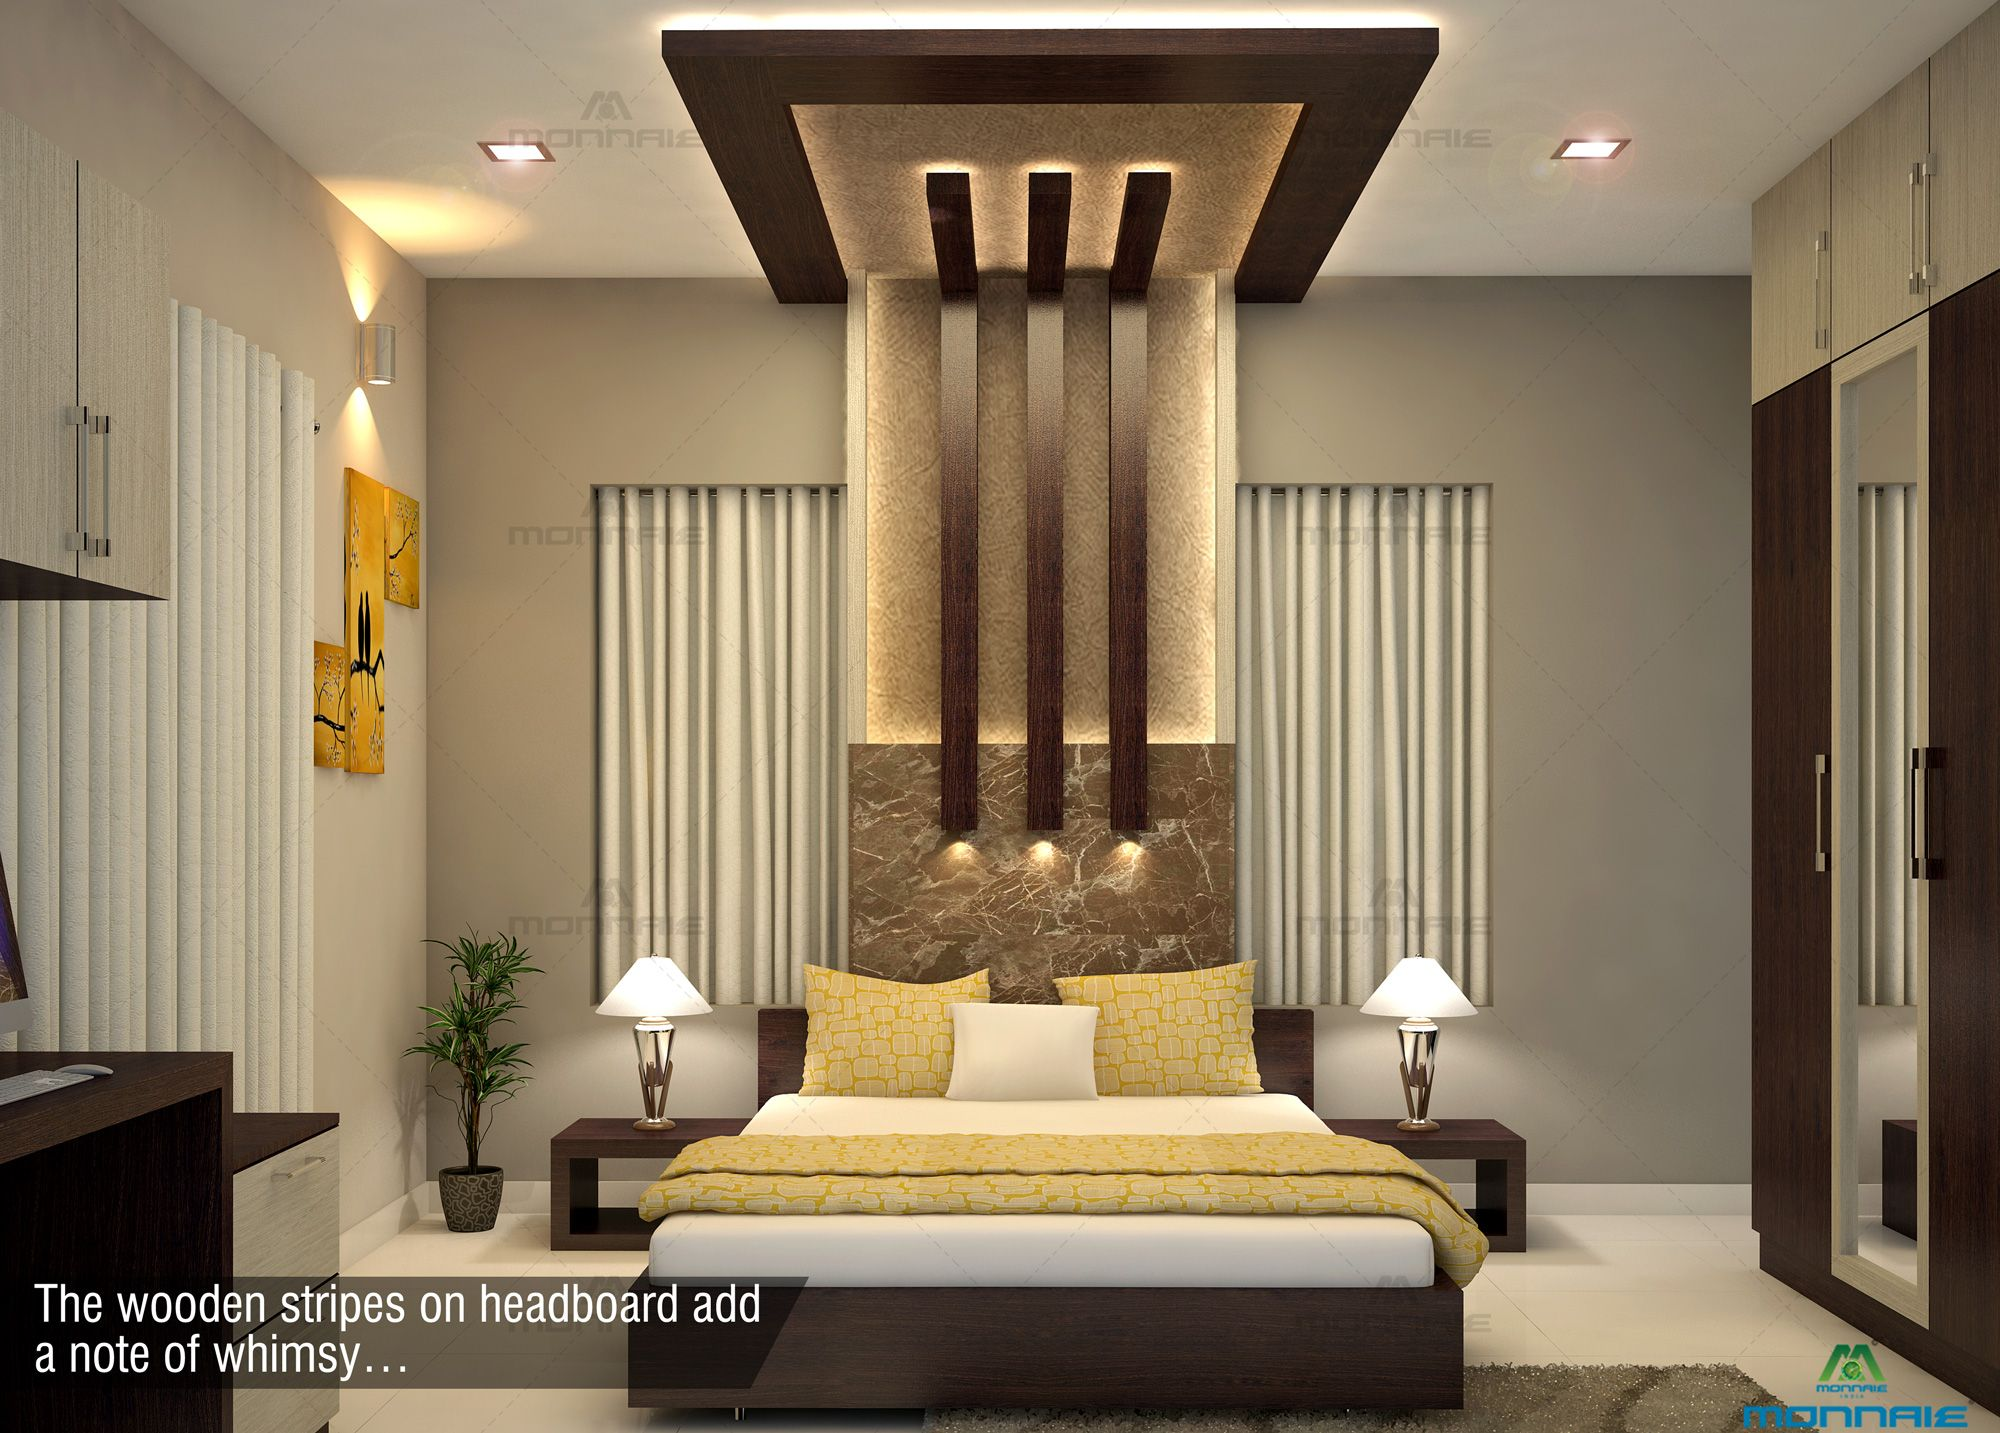 Bedroom Ceiling Interior Pin By Det On Interior Decorations Bedroom False Ceiling